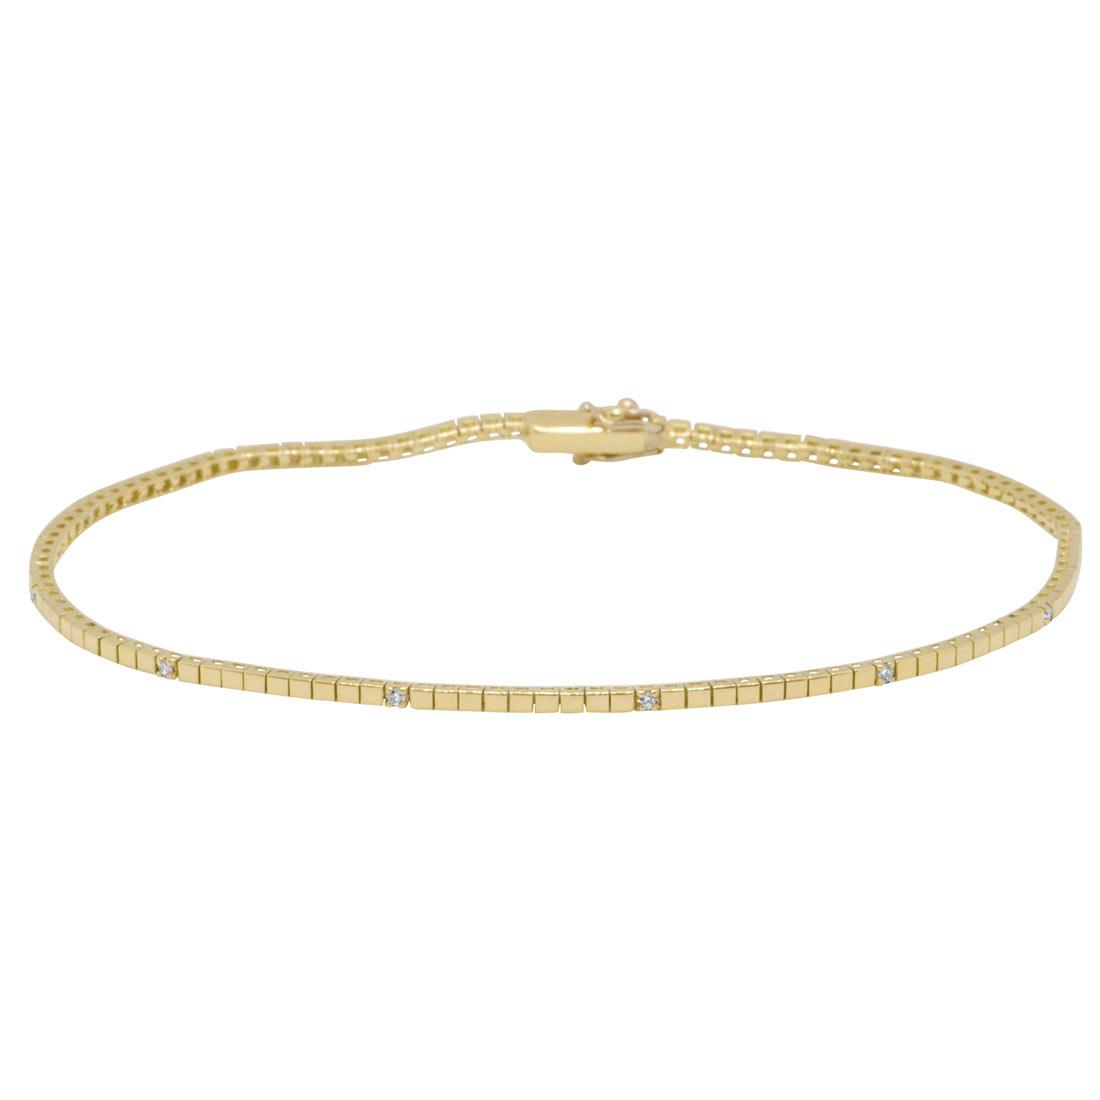 Bracciale tennis in oro giallo con diamanti 0,08 ct - ORO&CO